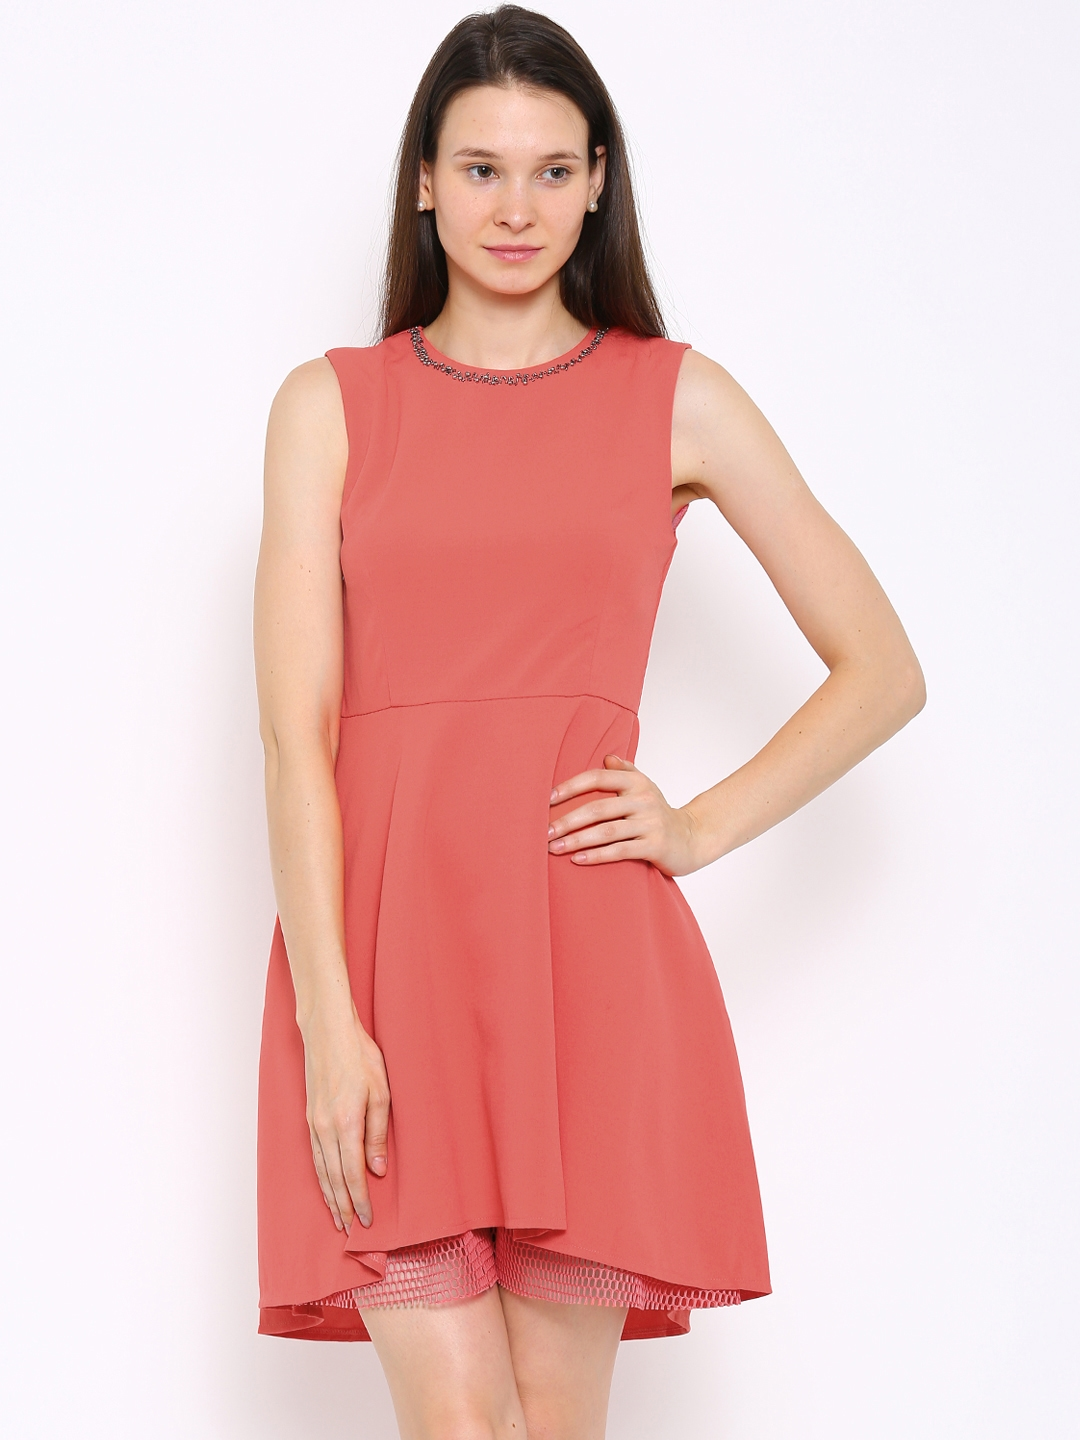 Dress For Solid Buy Dresses Pink Low Deal Jeans High Coral Women OXkw8nP0